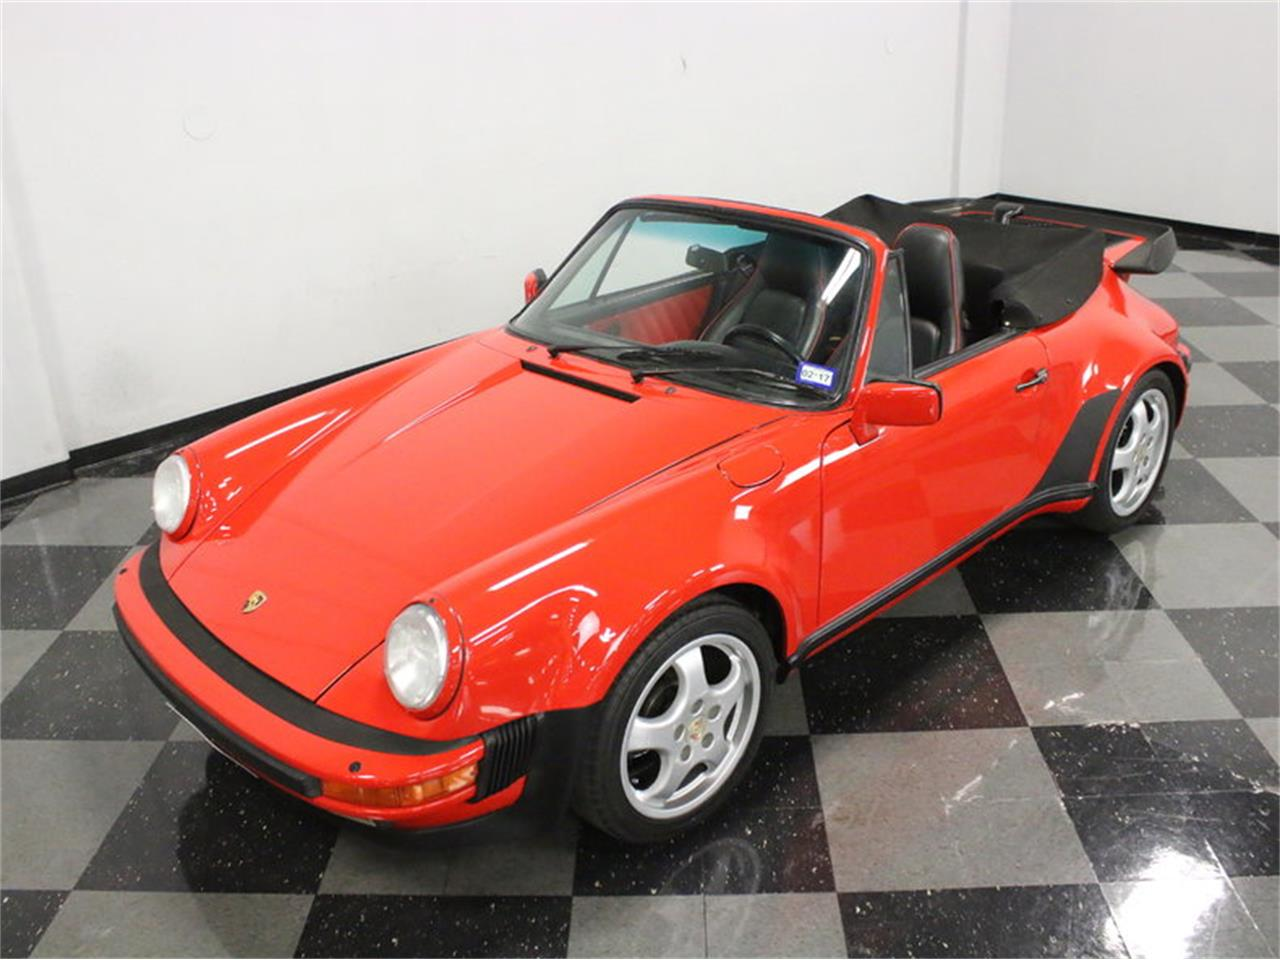 Large Picture of 1988 Porsche 911 located in Ft Worth Texas Offered by Streetside Classics - Dallas / Fort Worth - LBK3